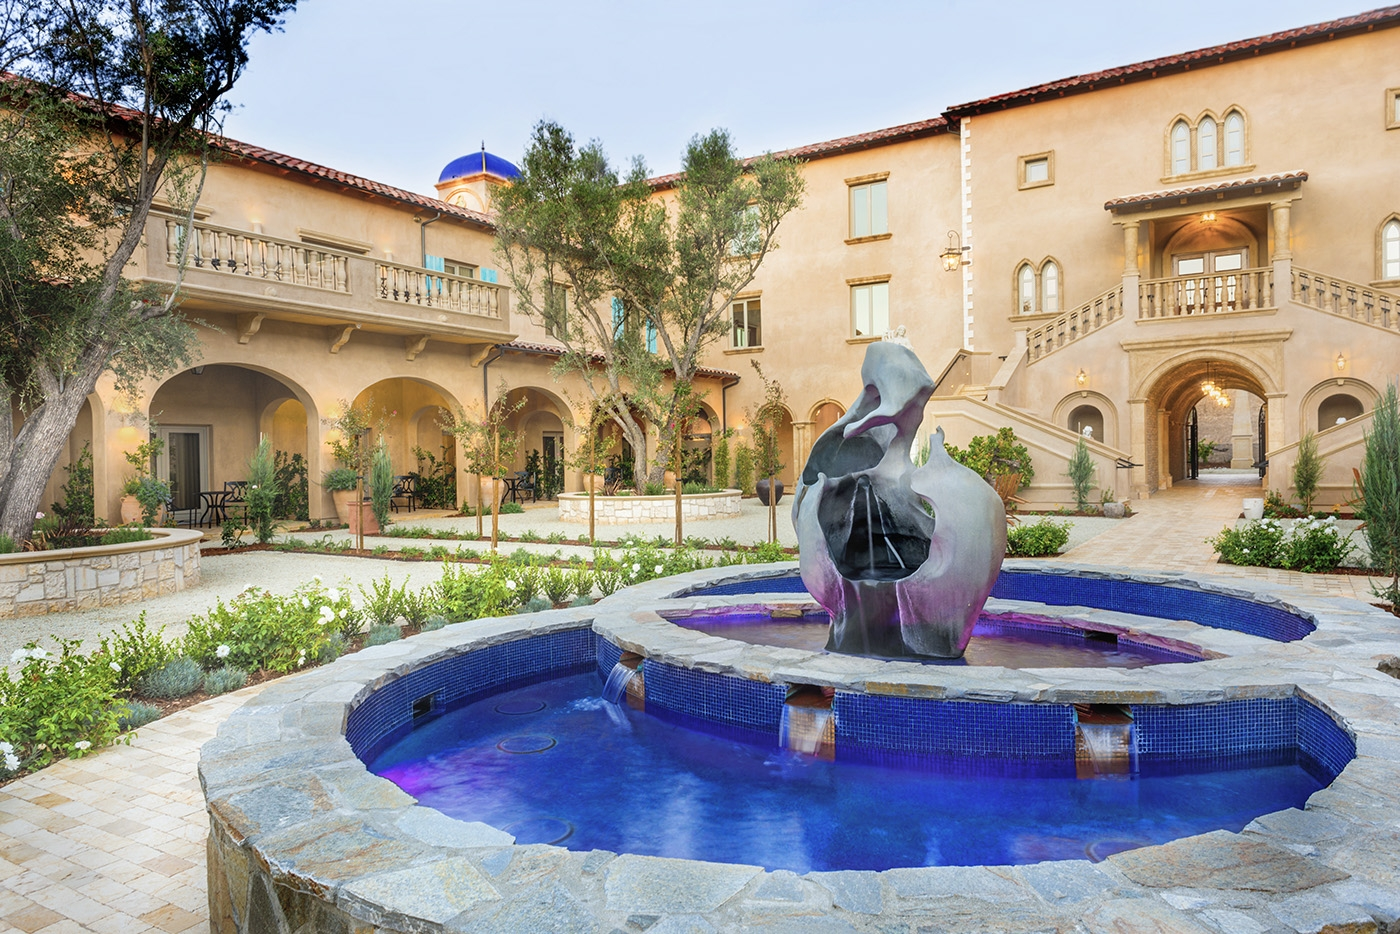 The resorts center courtyard fountain, Piazza magica